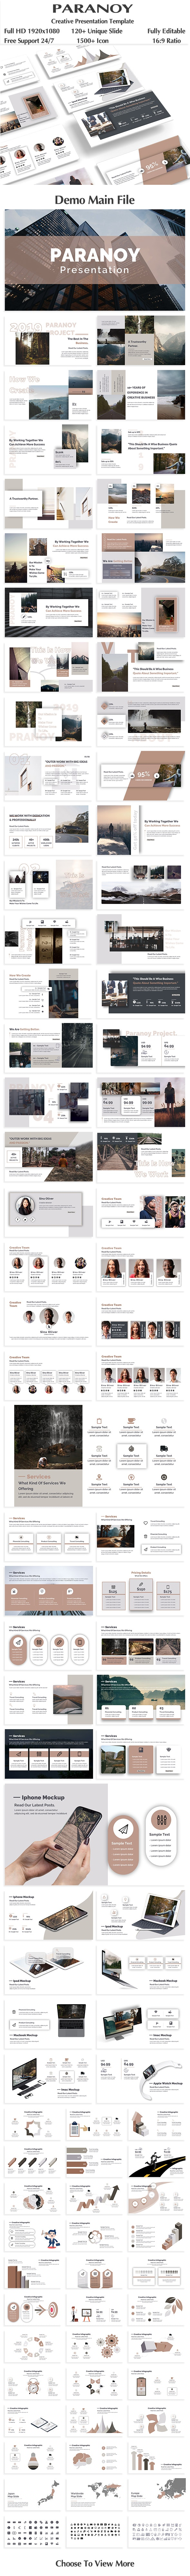 Paranoy Creative PowerPoint Template - Creative PowerPoint Templates